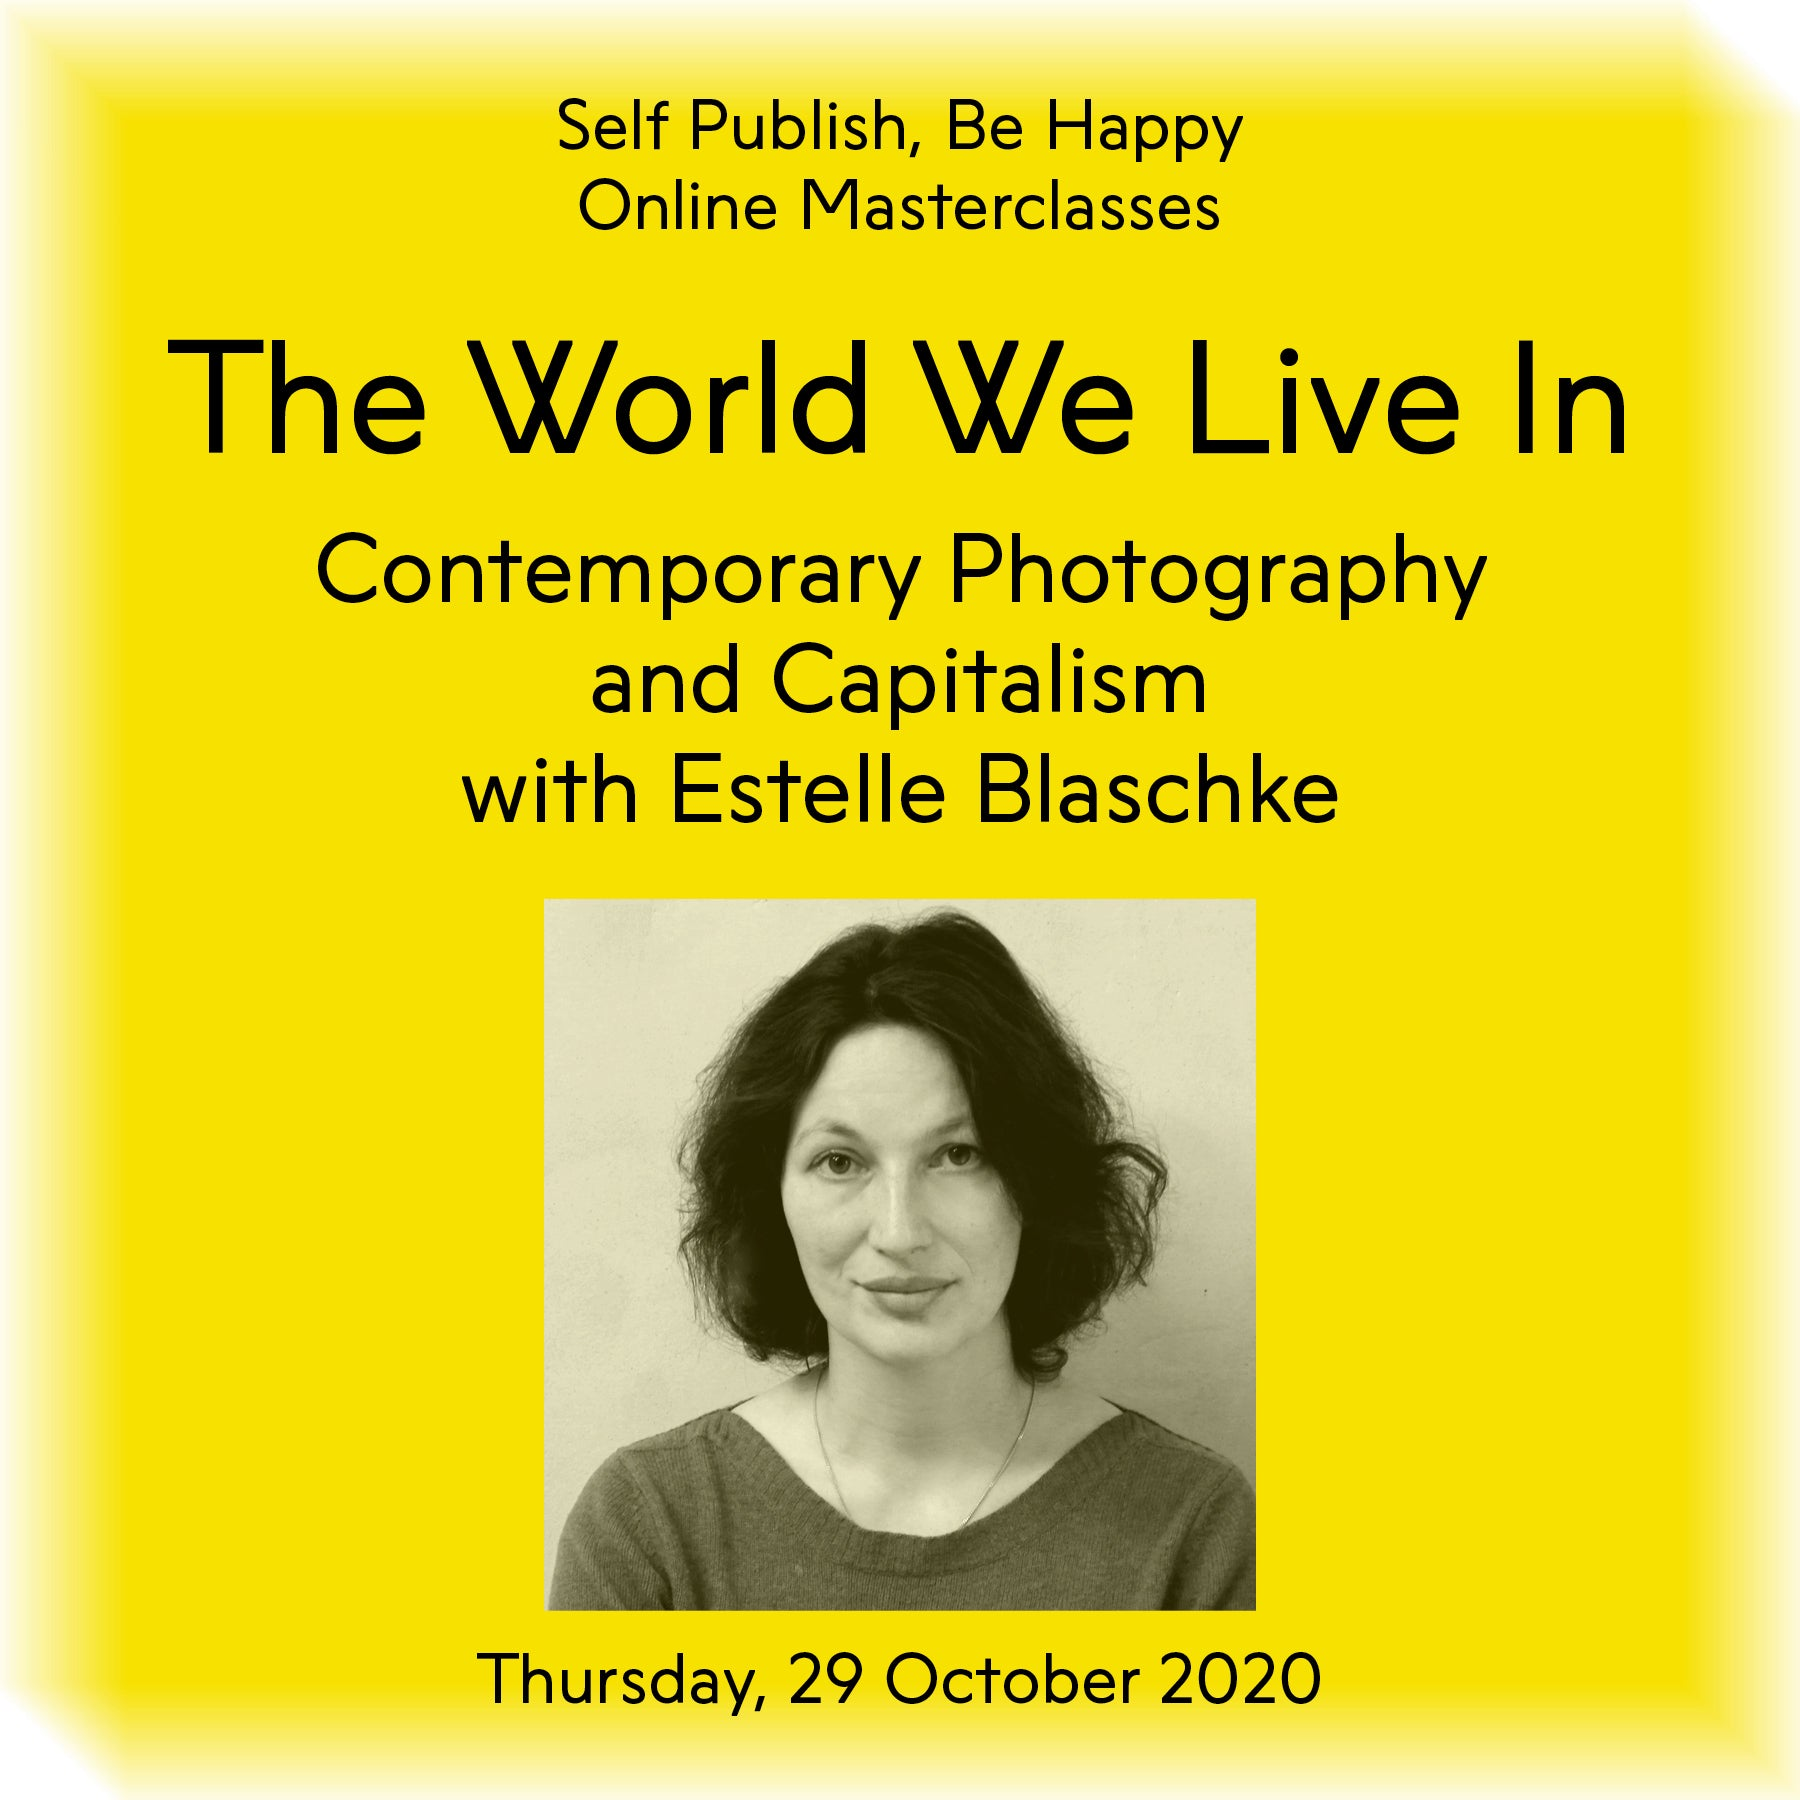 The World We Live In: Contemporary Photography and Capitalism with Estelle Blaschke